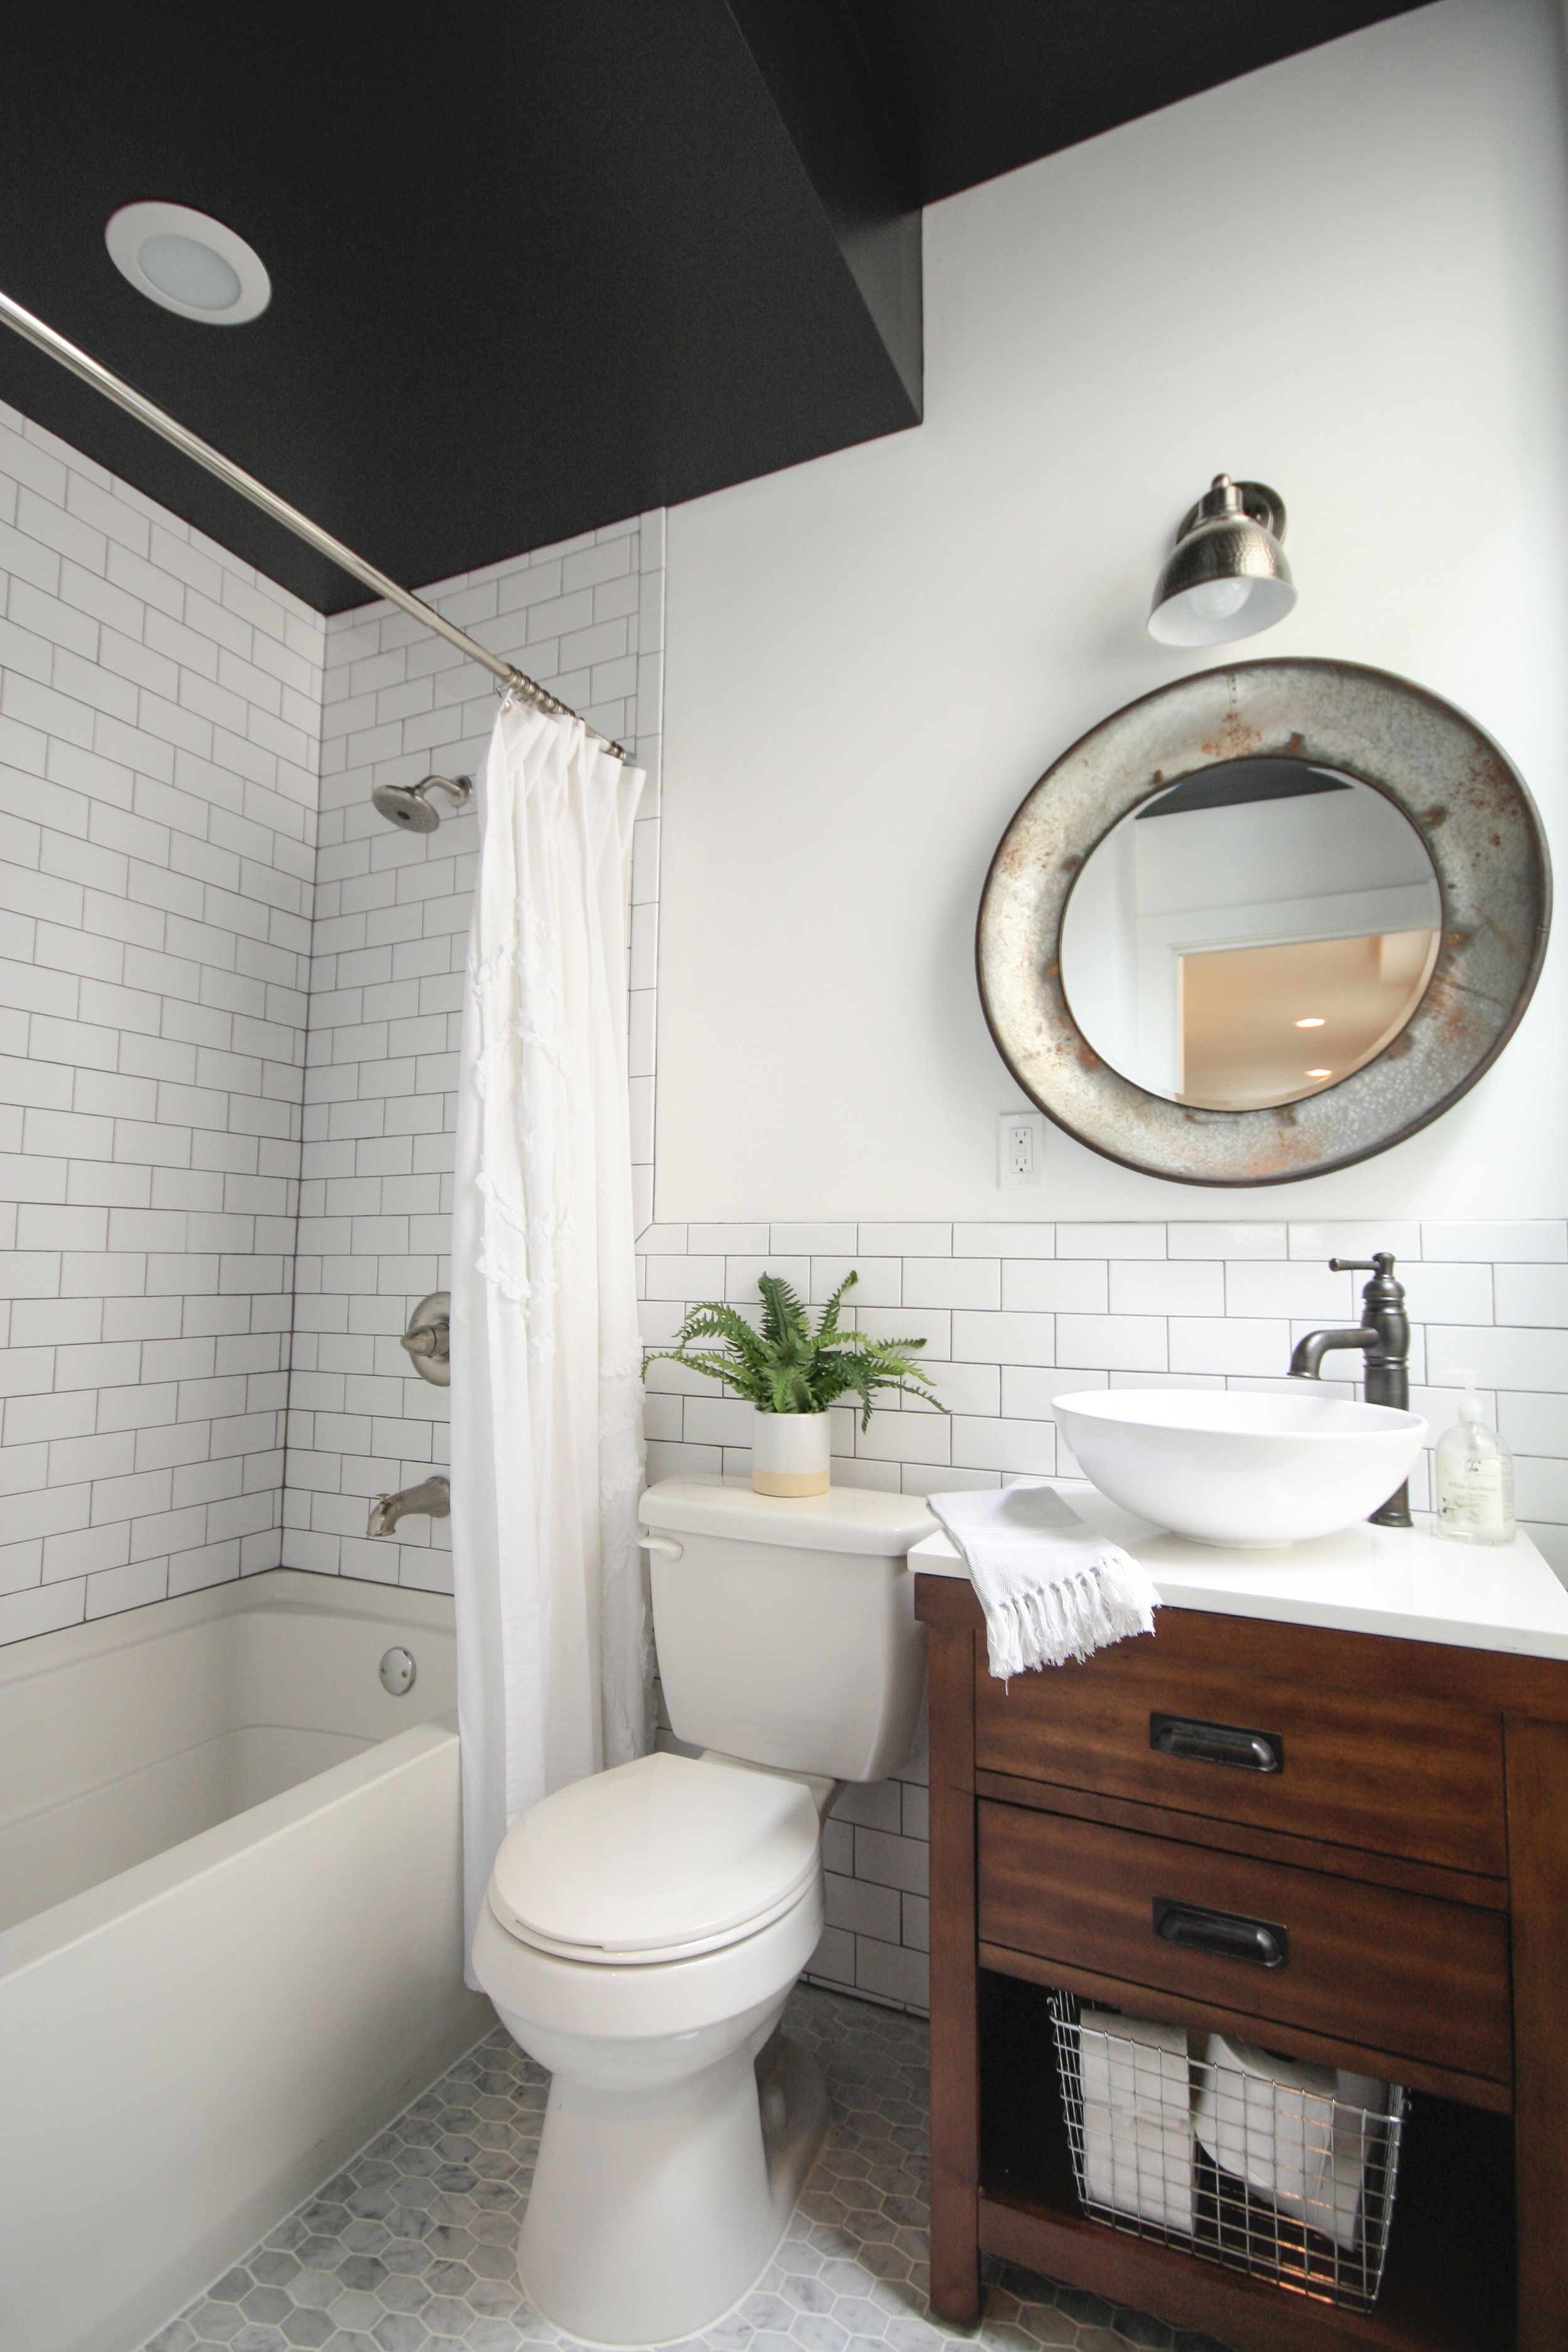 Industrial Schoolhouse style bathroom with Black ceiling with white subway tile and dark grout